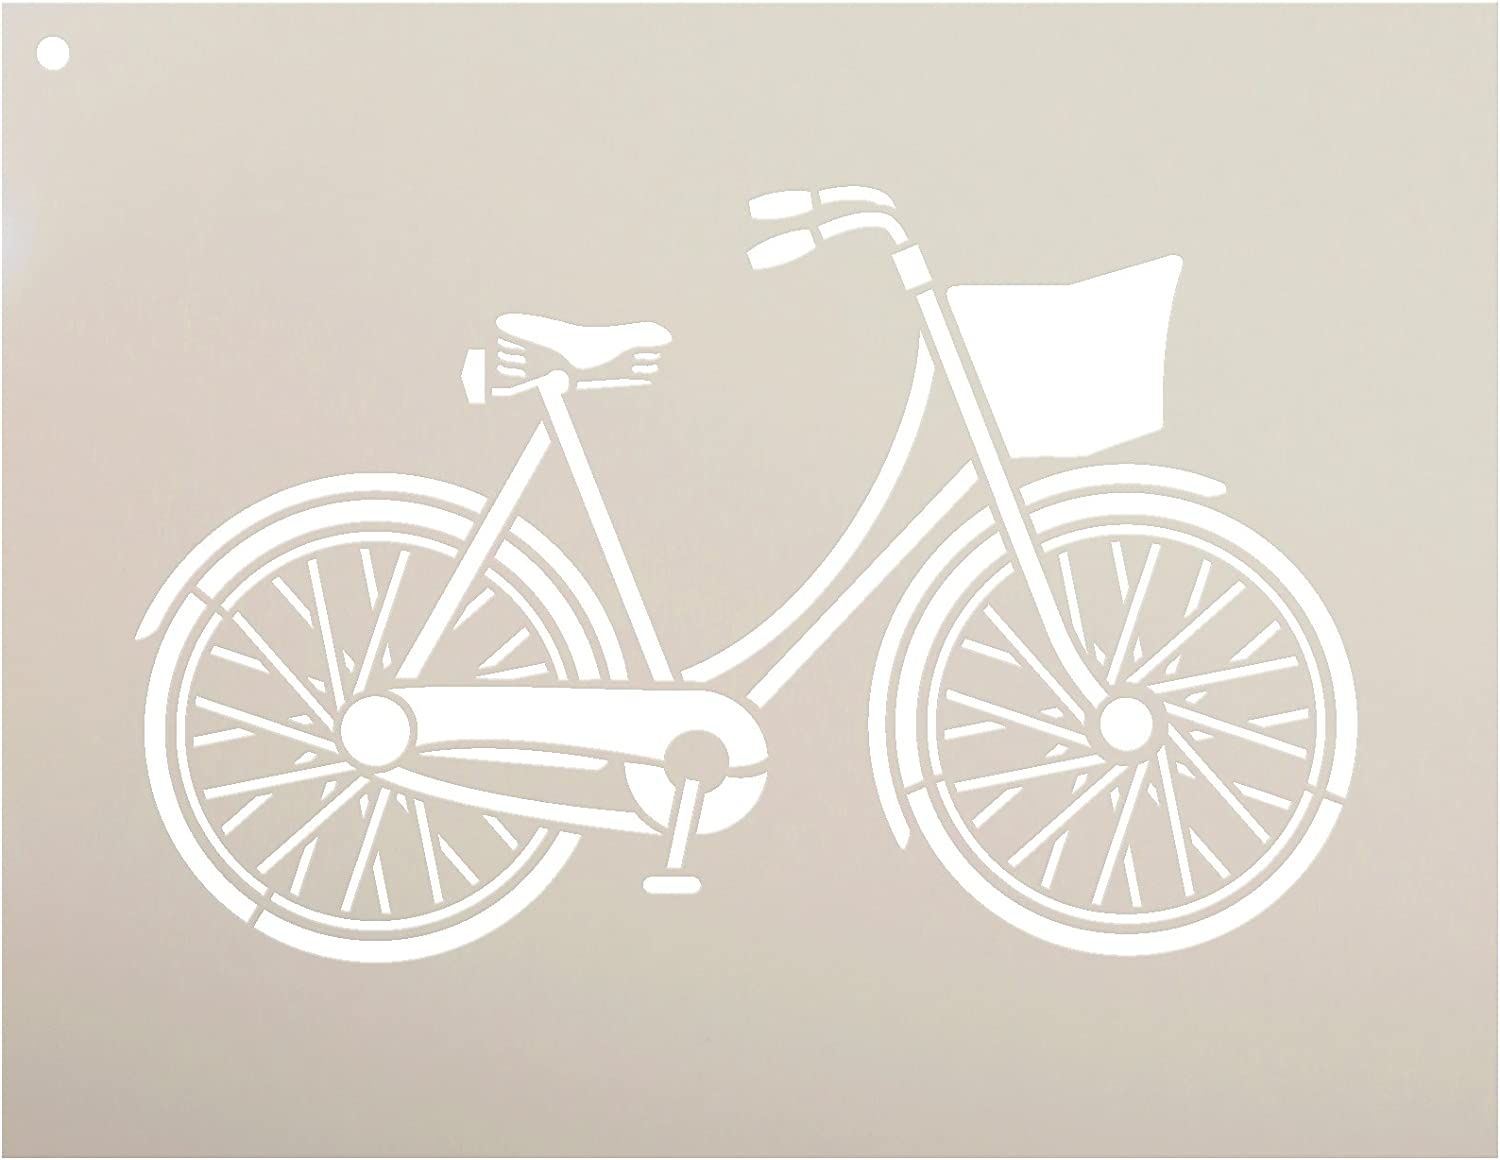 Bicycle Stencil by StudioR12 | Fun Vintage Art - Reusable Mylar Template | Painting, Chalk, Mixed Media | Use for Wall Art, DIY Home Decor - Choose Size (11